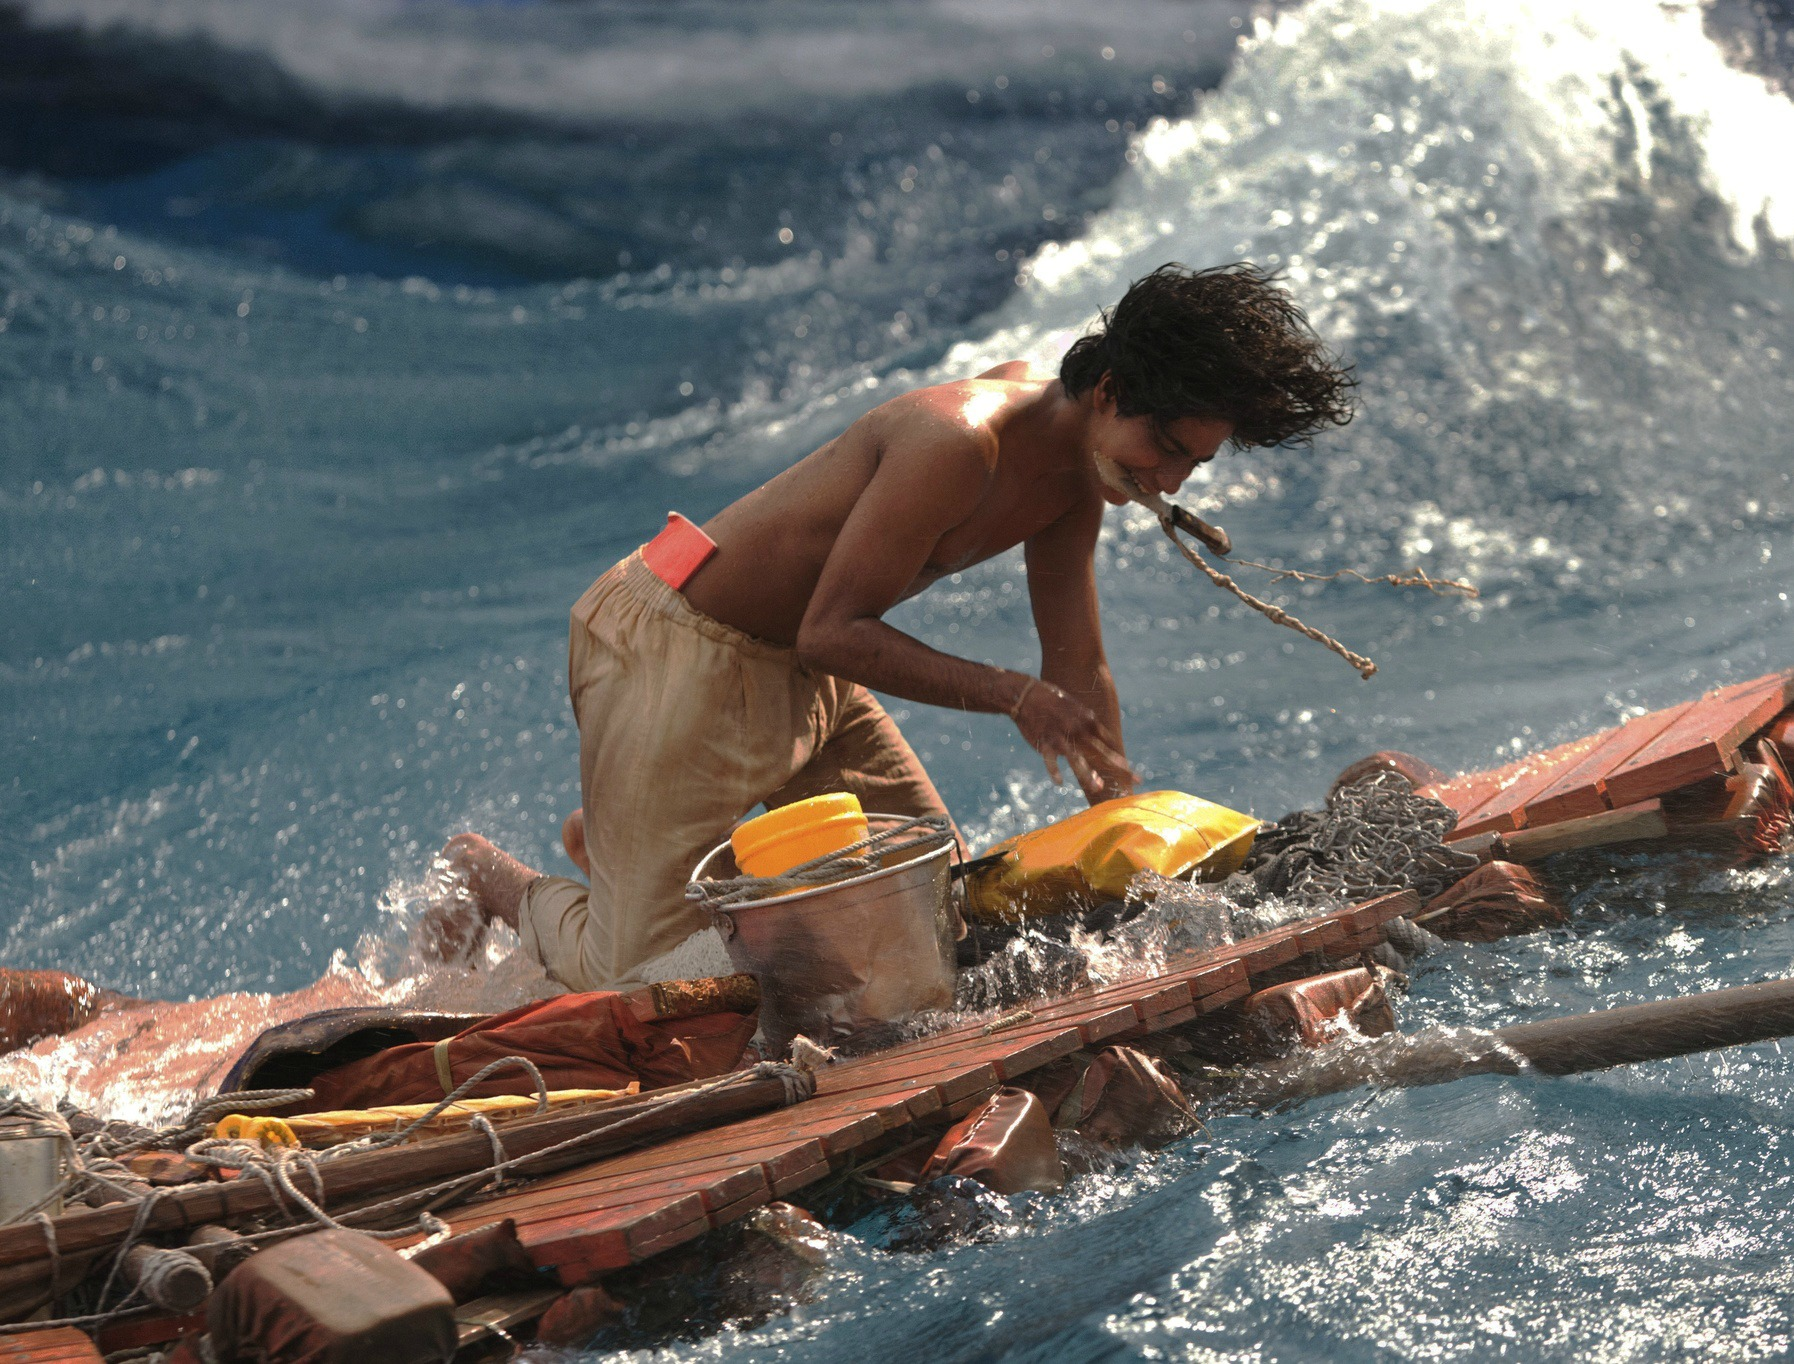 'Life of Pi' Review: Visual Masterpiece Interrupted by Narrative Hiccups